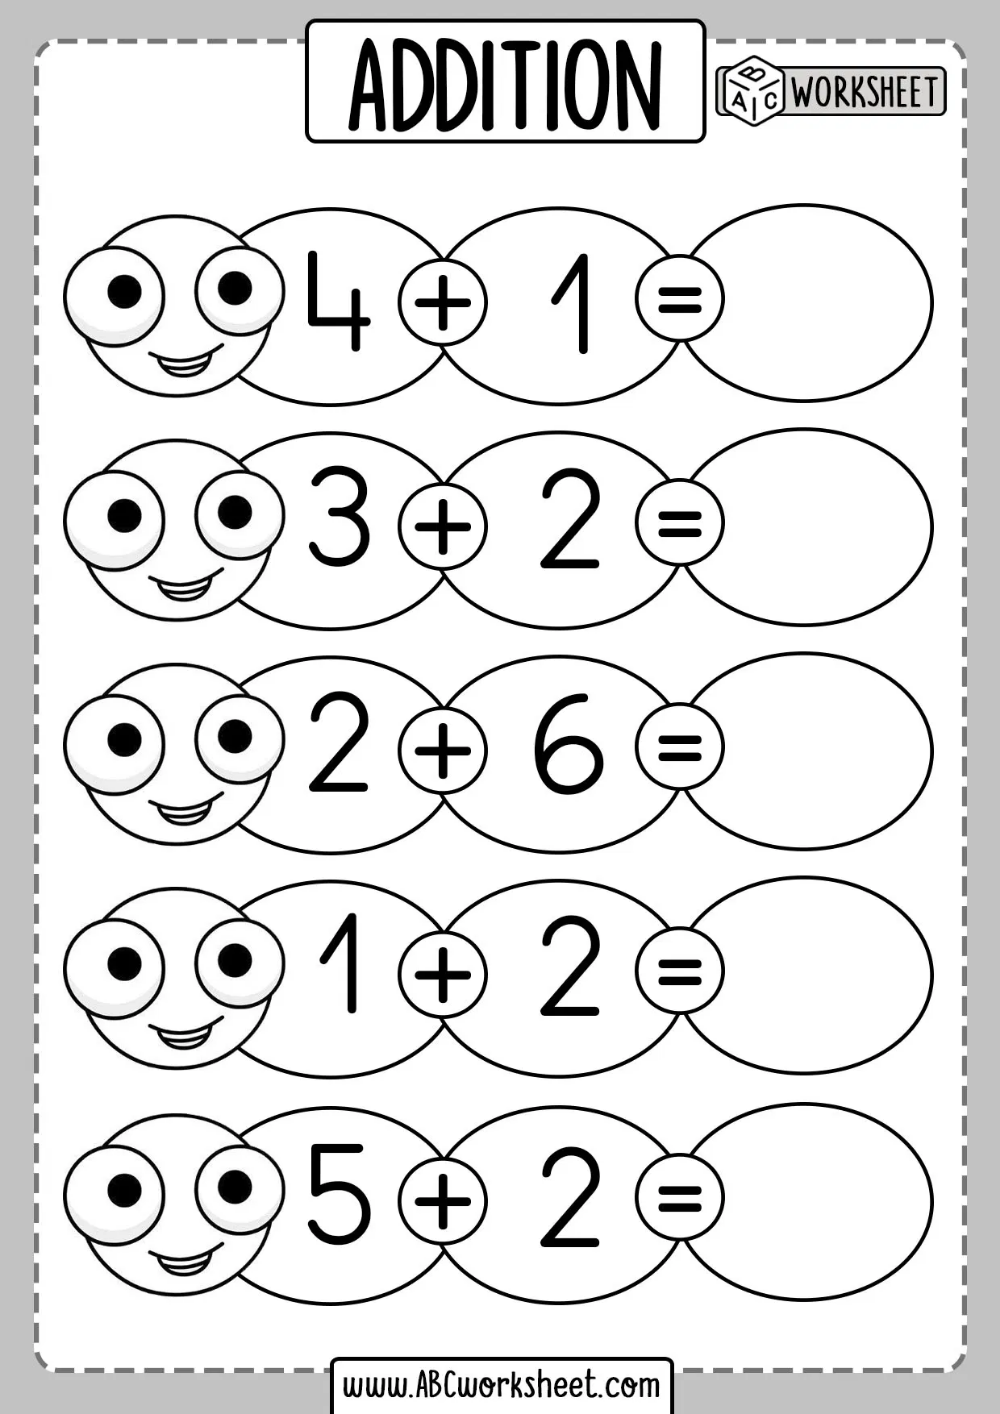 small resolution of Beginner Addition Worksheets   Addition worksheets